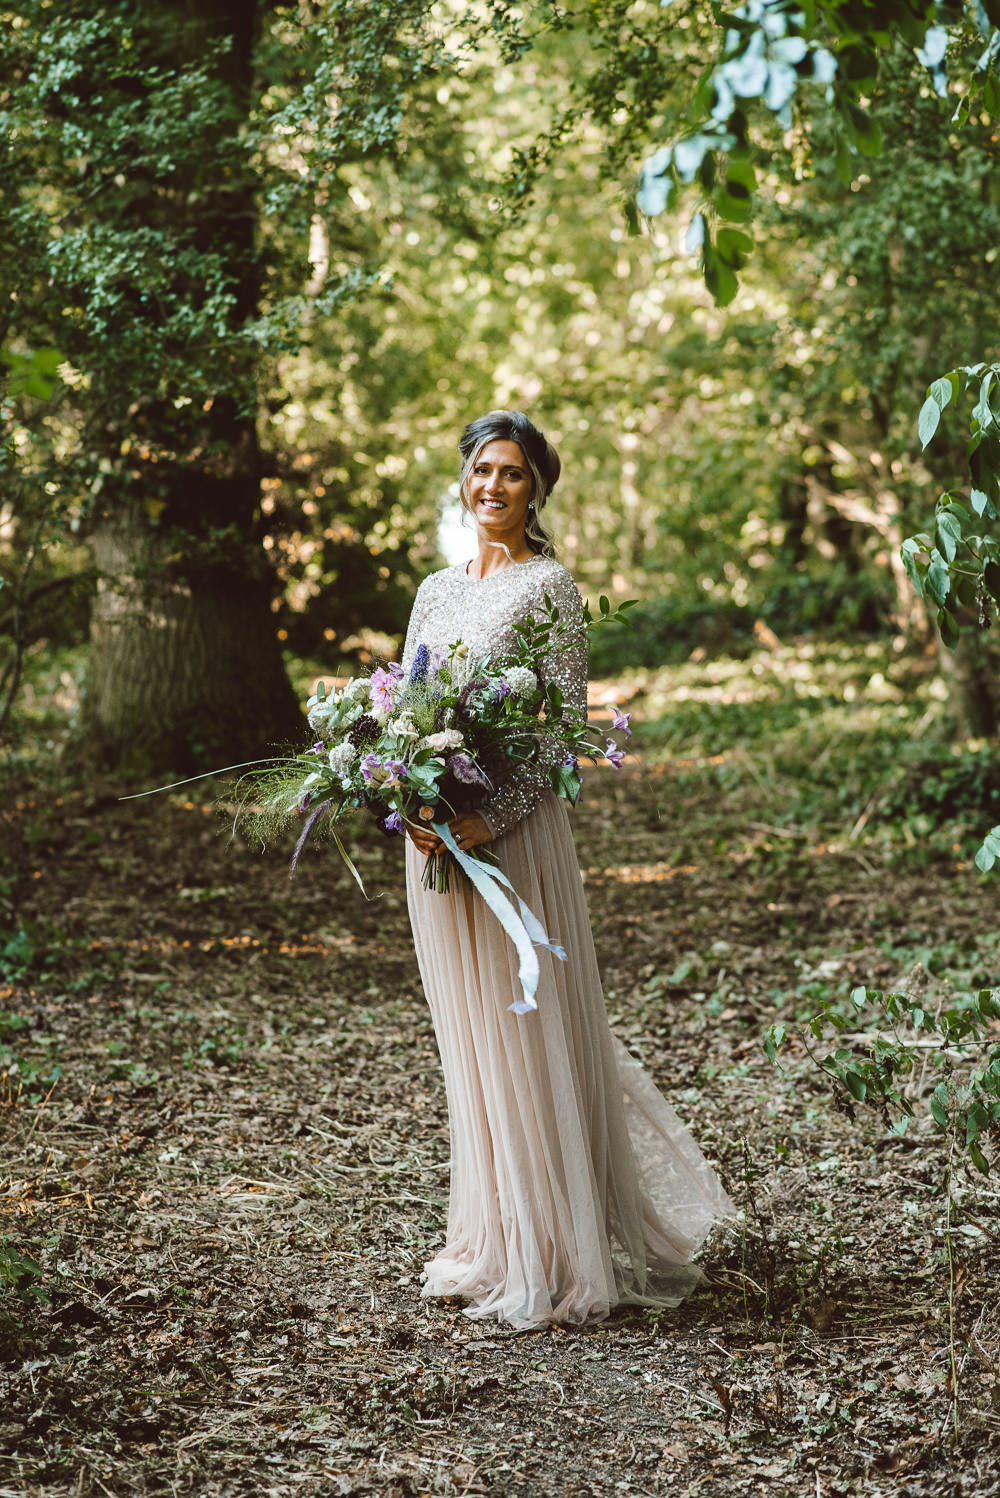 Dress Gown Bride Bridal Gold Sequin Tulle Sleeves Ethereal Magical Golden Hour Wedding Ideas Dhw Photography